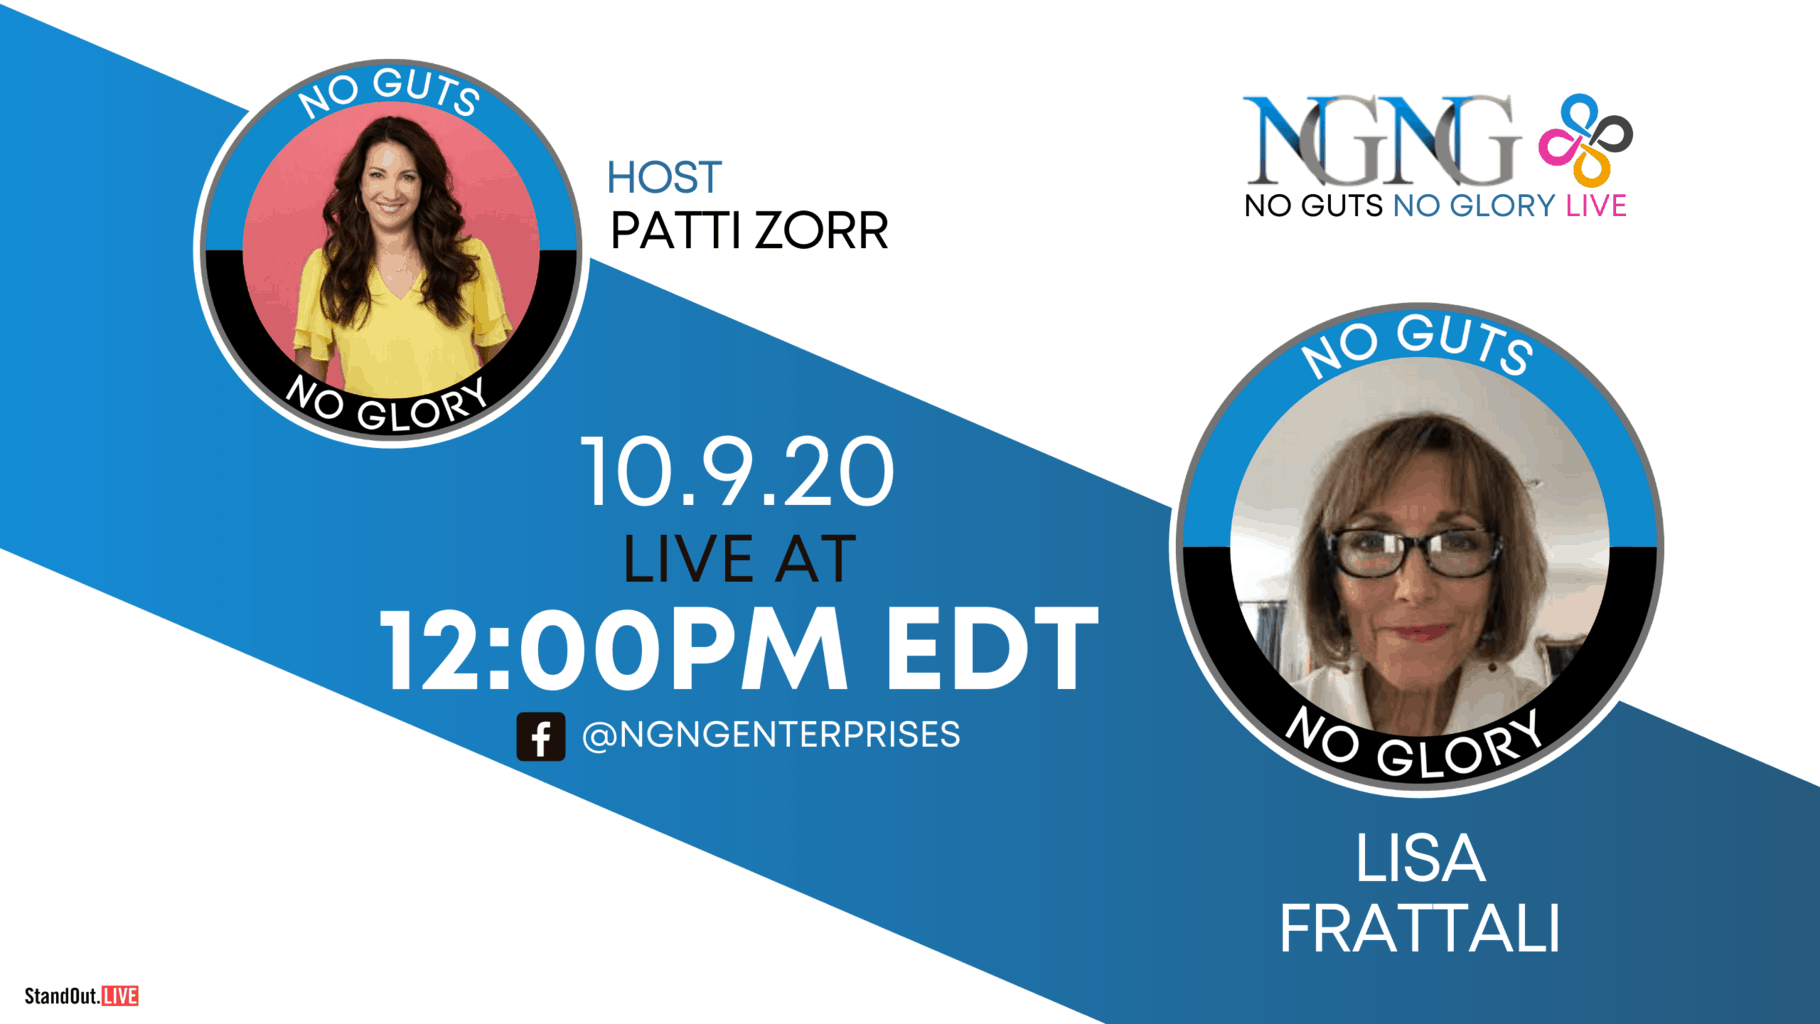 10.9-Lisa Frattali- NO GUTS NO GLORY LIVE (Twitter, YouTube, Blog)